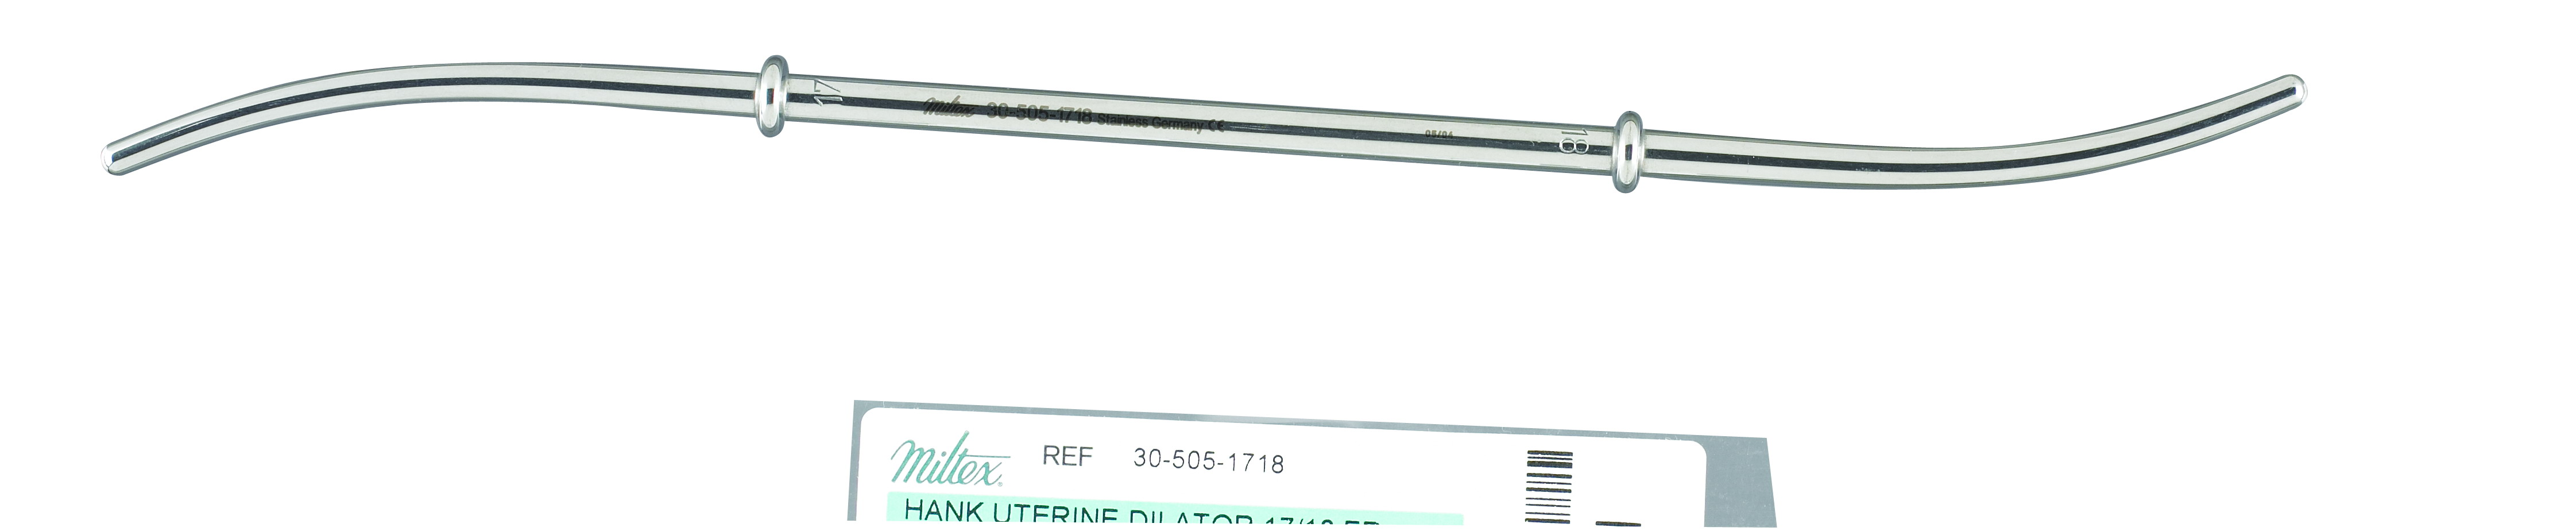 hank-uterine-dilators-10-1-2-267-cm-double-end-17-18-fr56-6-mm-30-505-1718-miltex.jpg